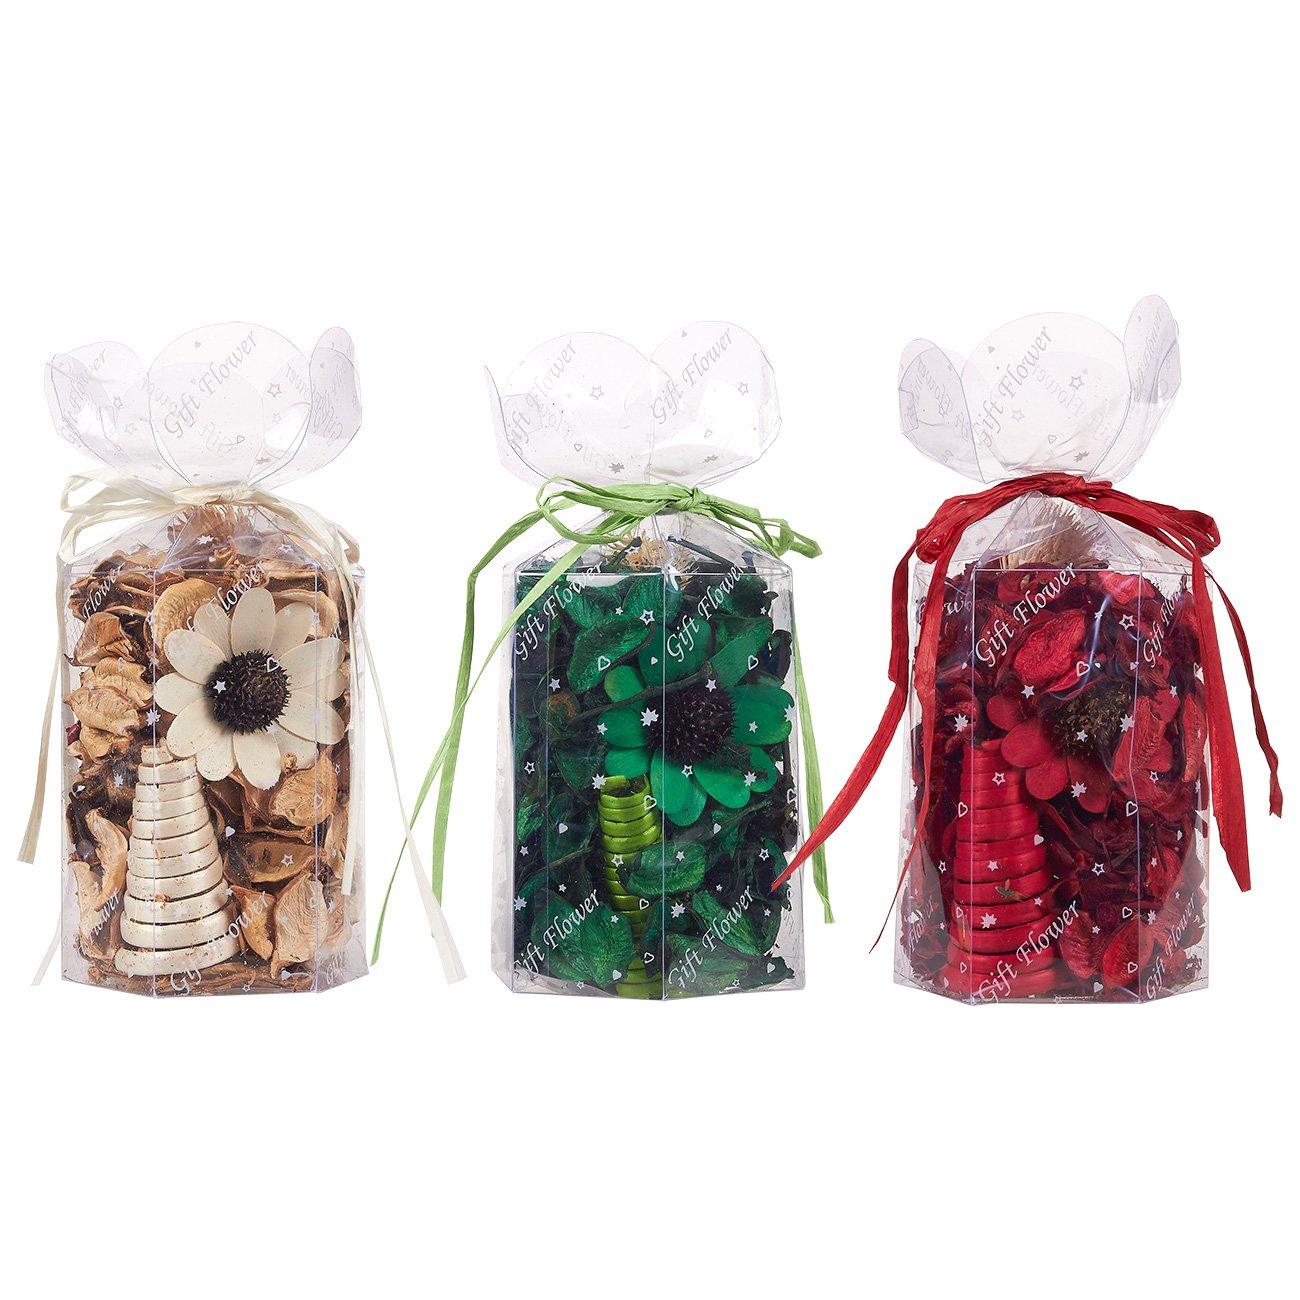 Potpourri Bags - Scented Potpourri, Potpourri for Bathroom, Fragrance Bag for Living Room, Office, Bedroom, Assorted Colors and Fragrances - 4 x 8 x 3.5 Inche 3pack Large